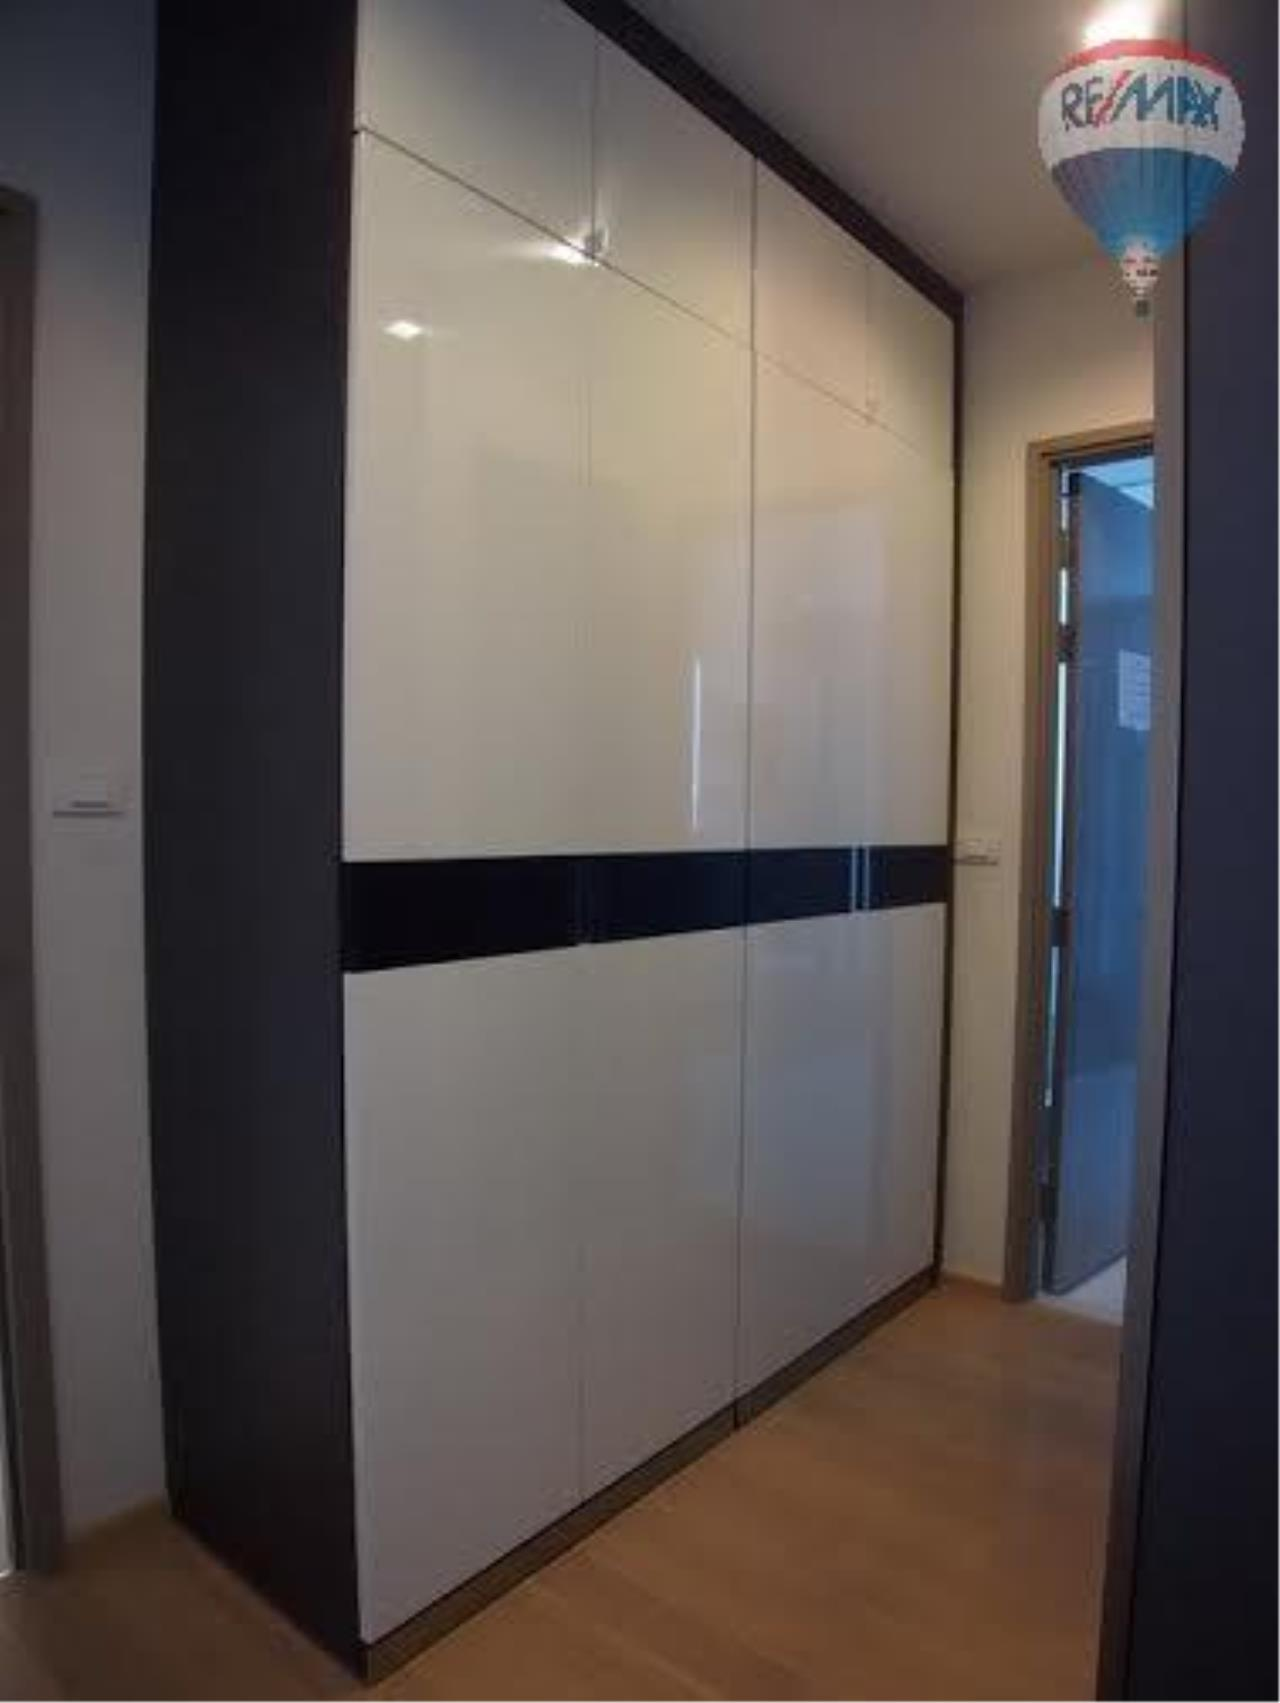 RE/MAX Properties Agency's 2 Bedrooms 100 Sq.M. in HQ by Sansiri for sale 27